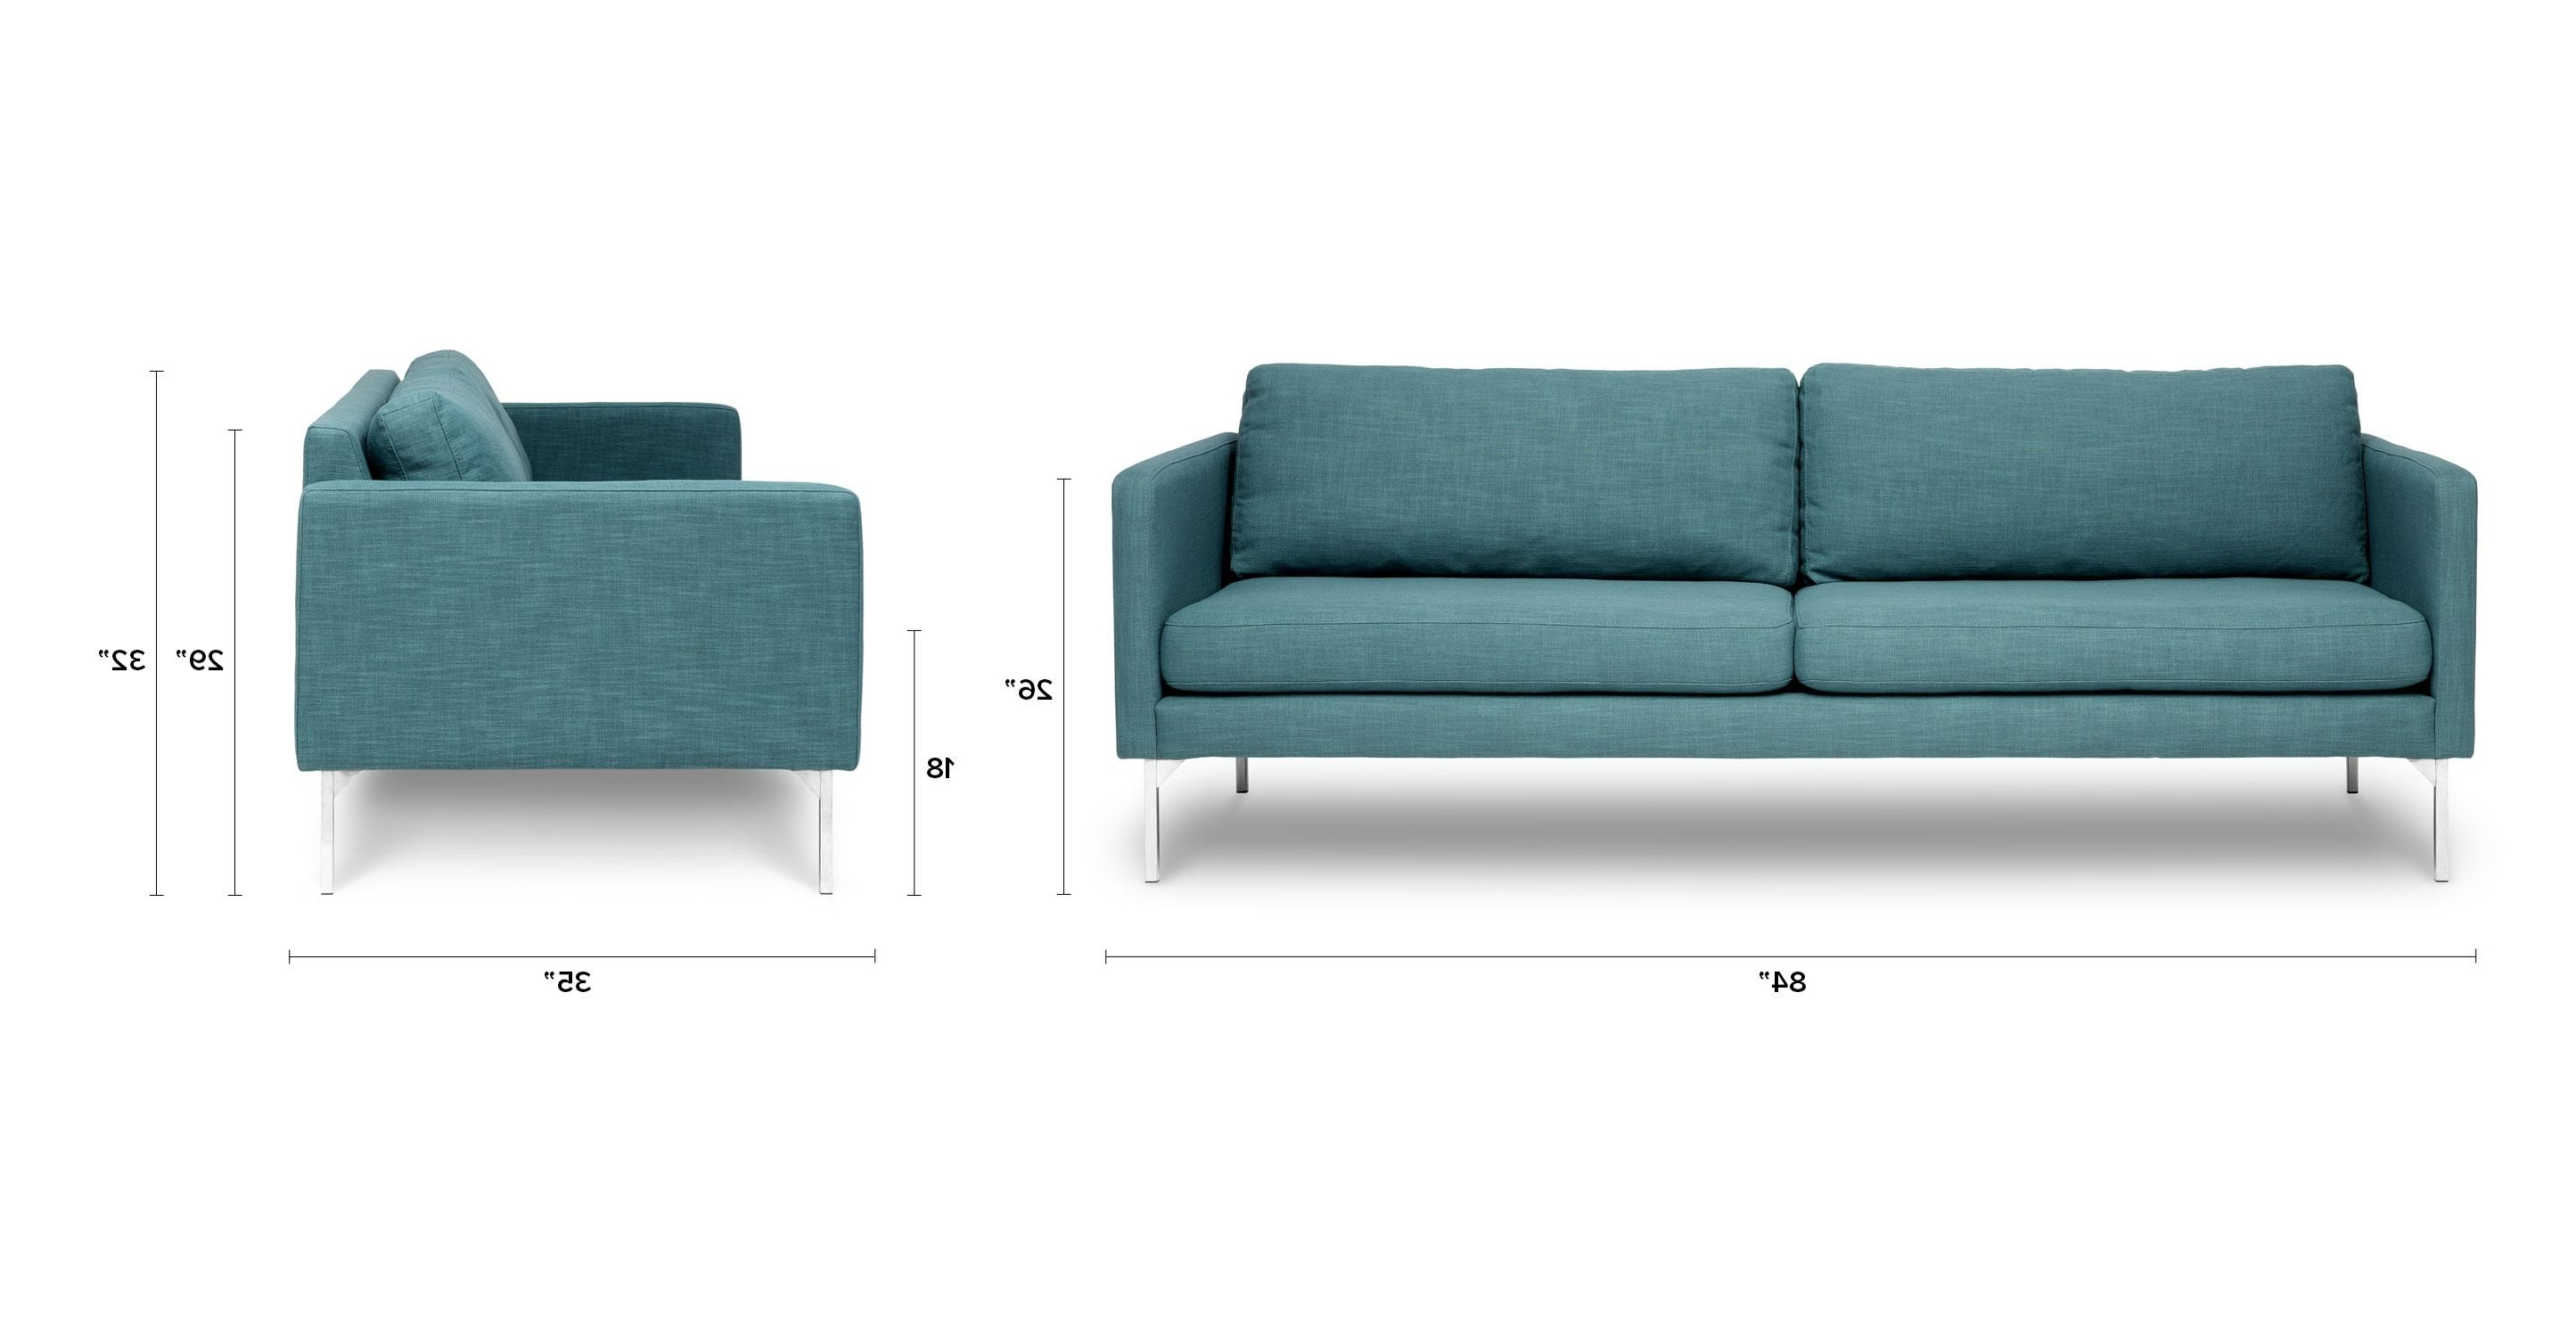 Aqua Sofas Regarding Latest Furniture : Grey Loveseat Cover Elegant Echo Ice Aqua Sofa Sofas (View 14 of 20)